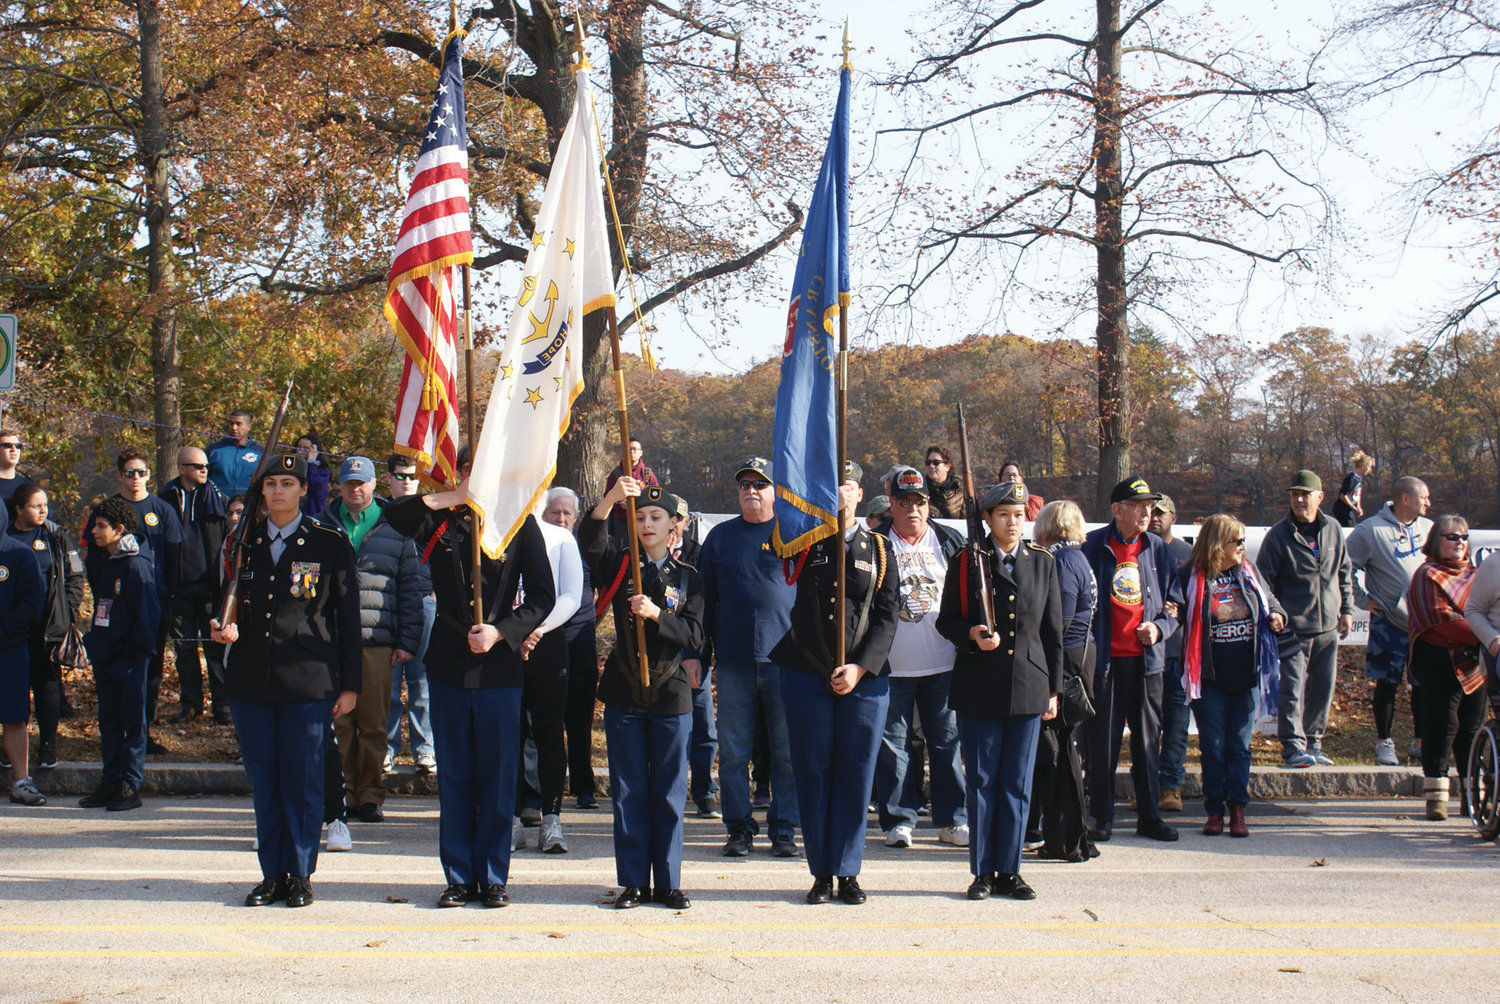 STEPPING OFF: The Cranston High School East JROTC led the way with veterans, dignitaries and special guests prior to the running of the seventh annual Park View Veterans Day 5K on Monday.